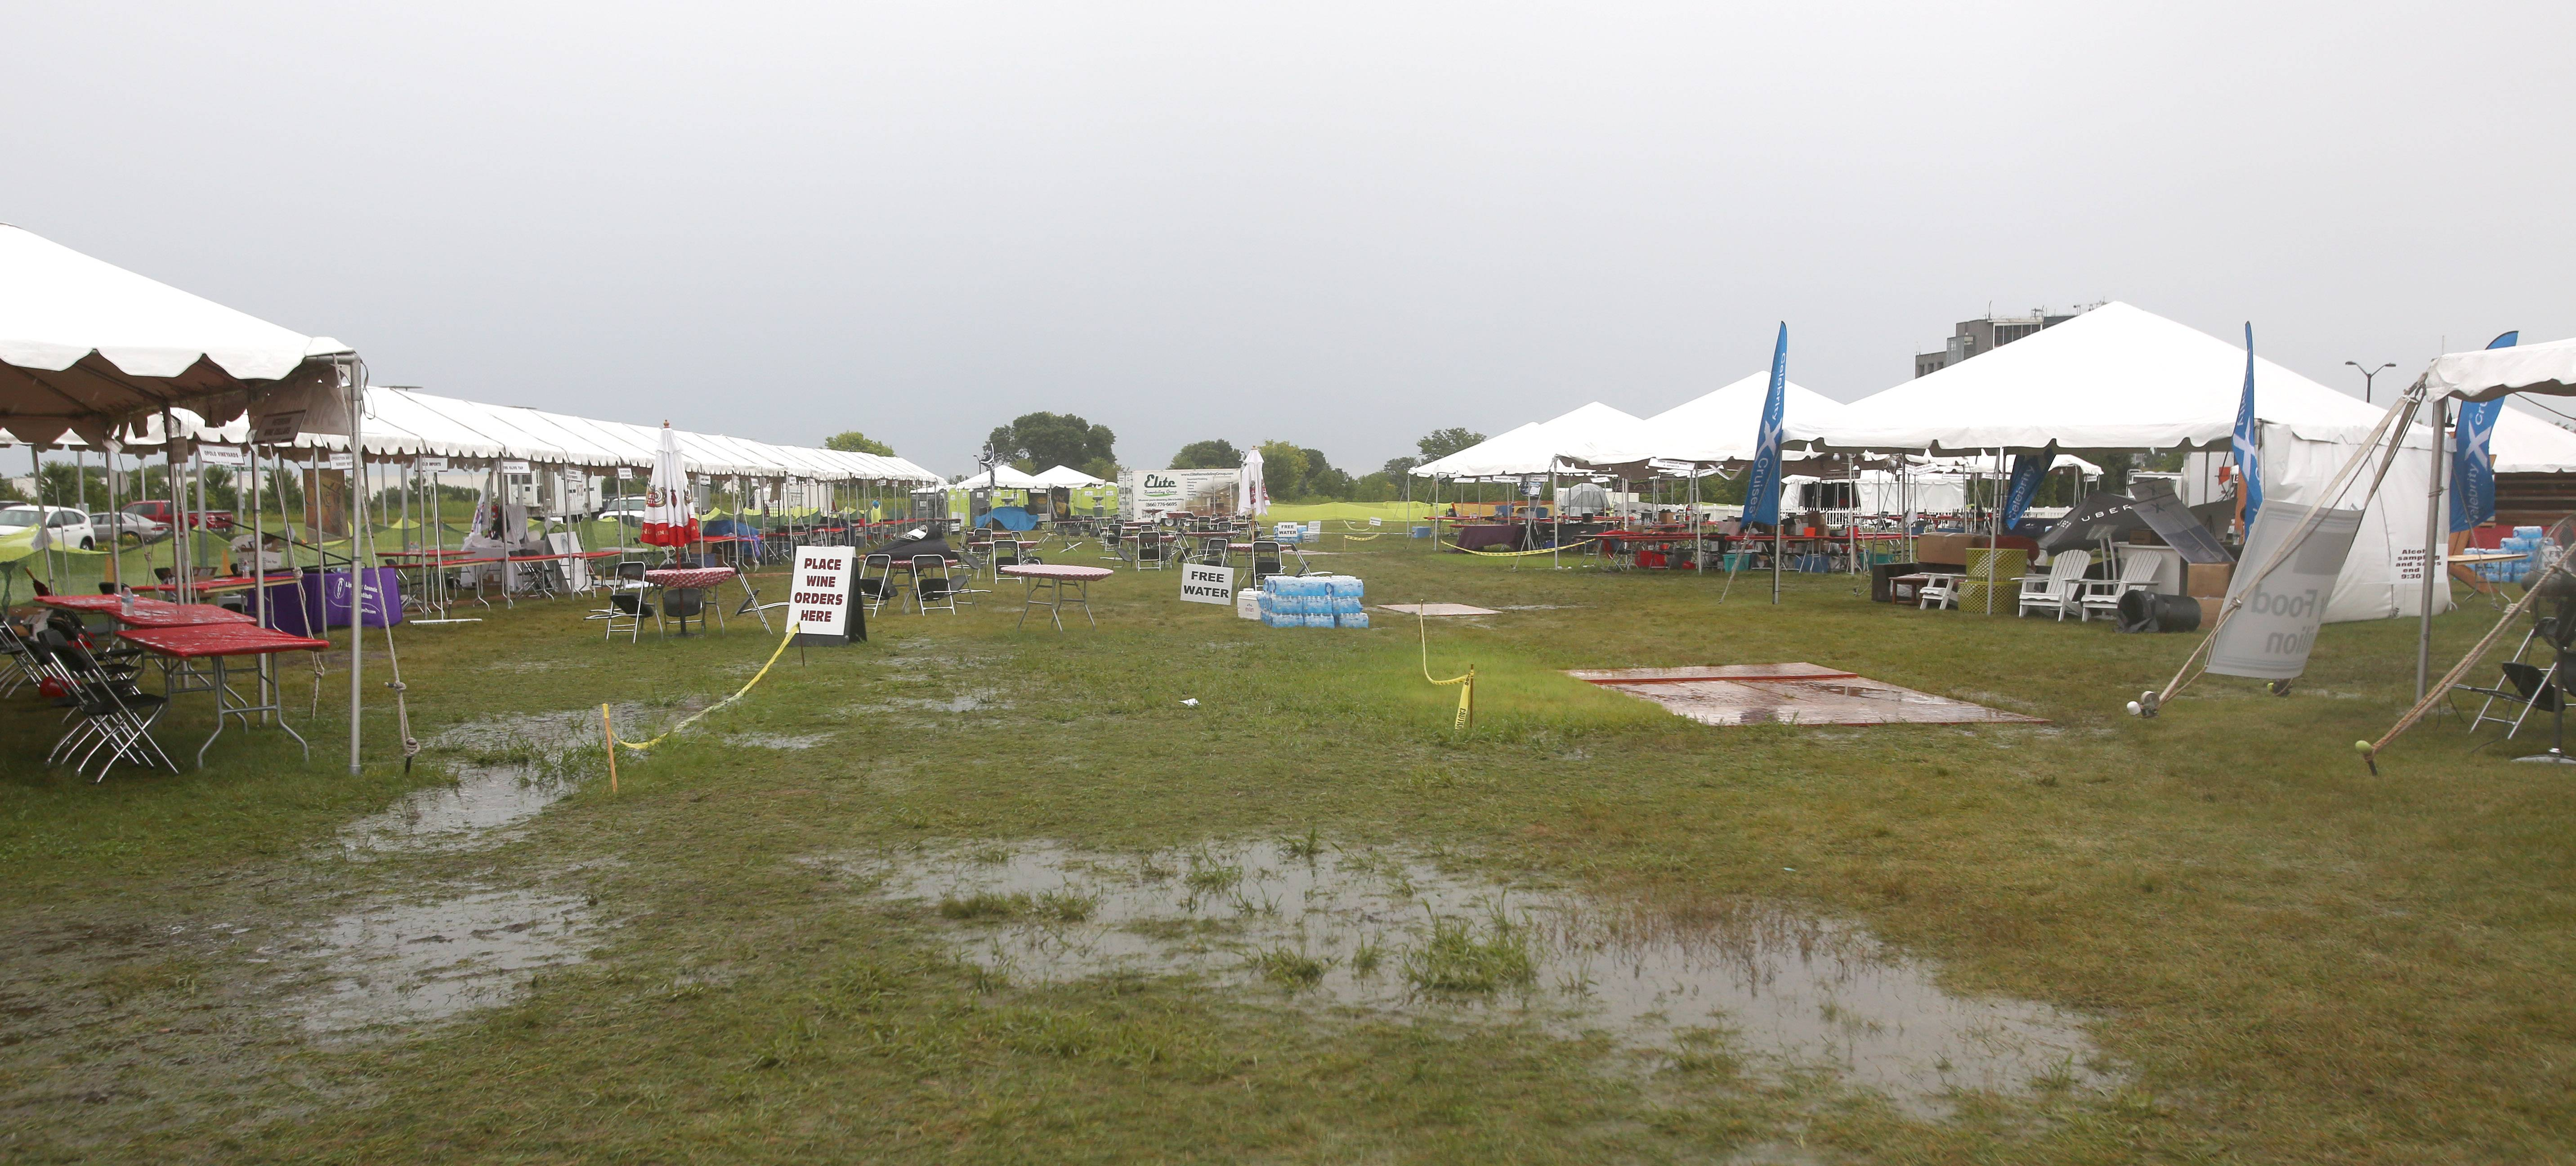 Saturday's start of the 12th annual Naperville Wine Fest at the CityGate Centre was delayed two hours to 5 p.m. due to fear of lightning following heavy rains.